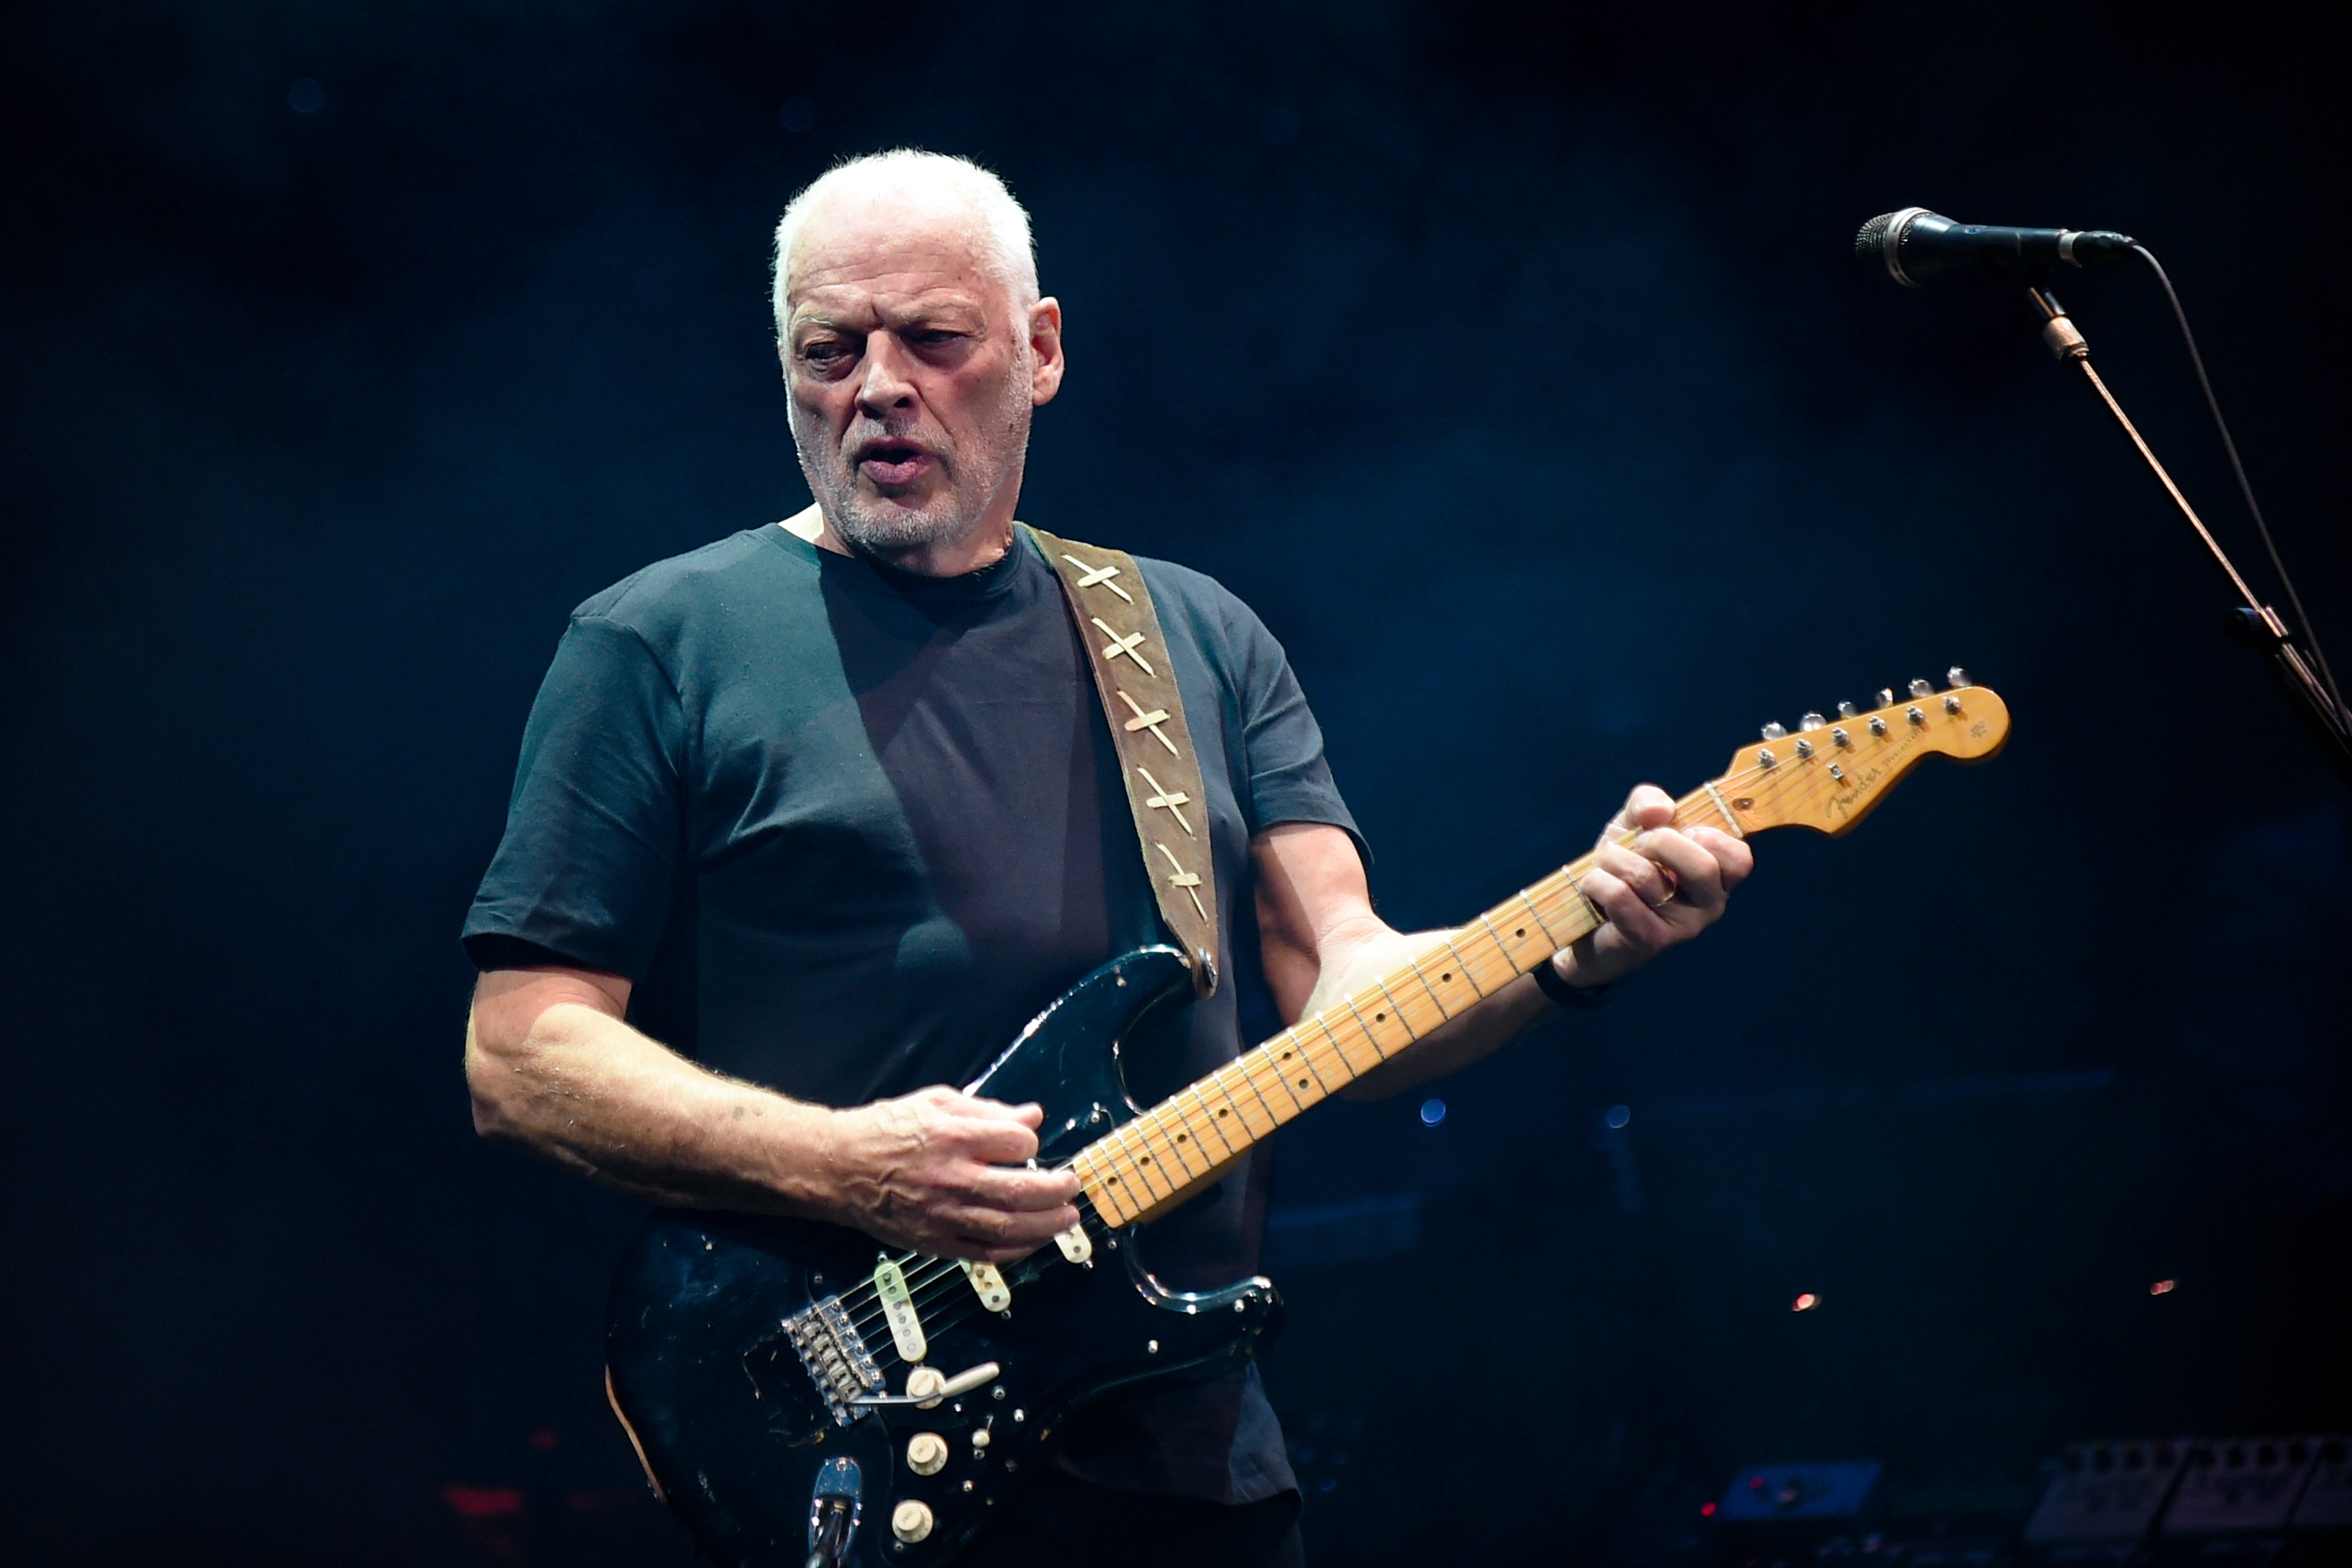 David Gilmour on Why He's Selling 120 Guitars: 'Everything Has Got to Go'